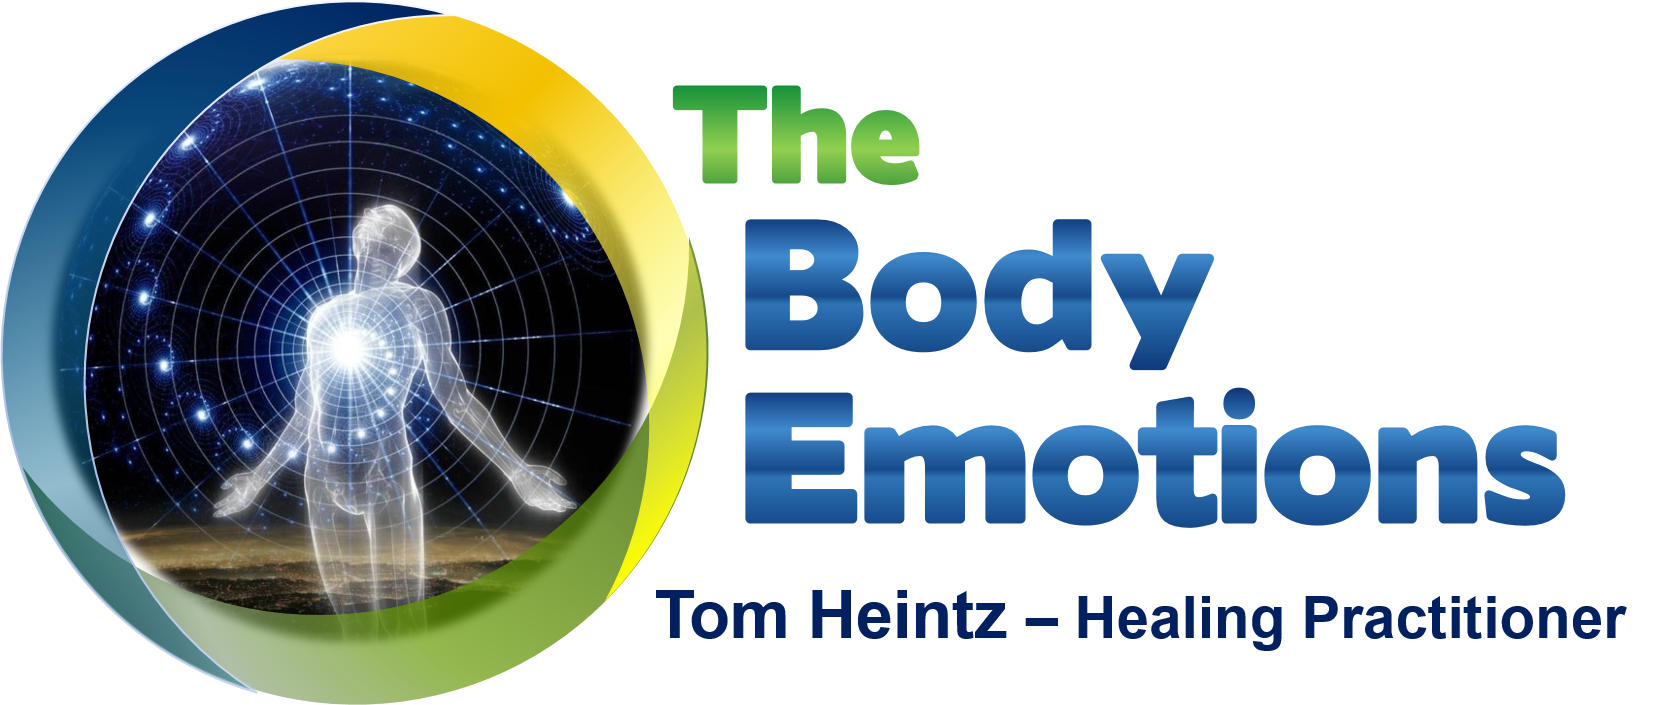 The Body Emotions